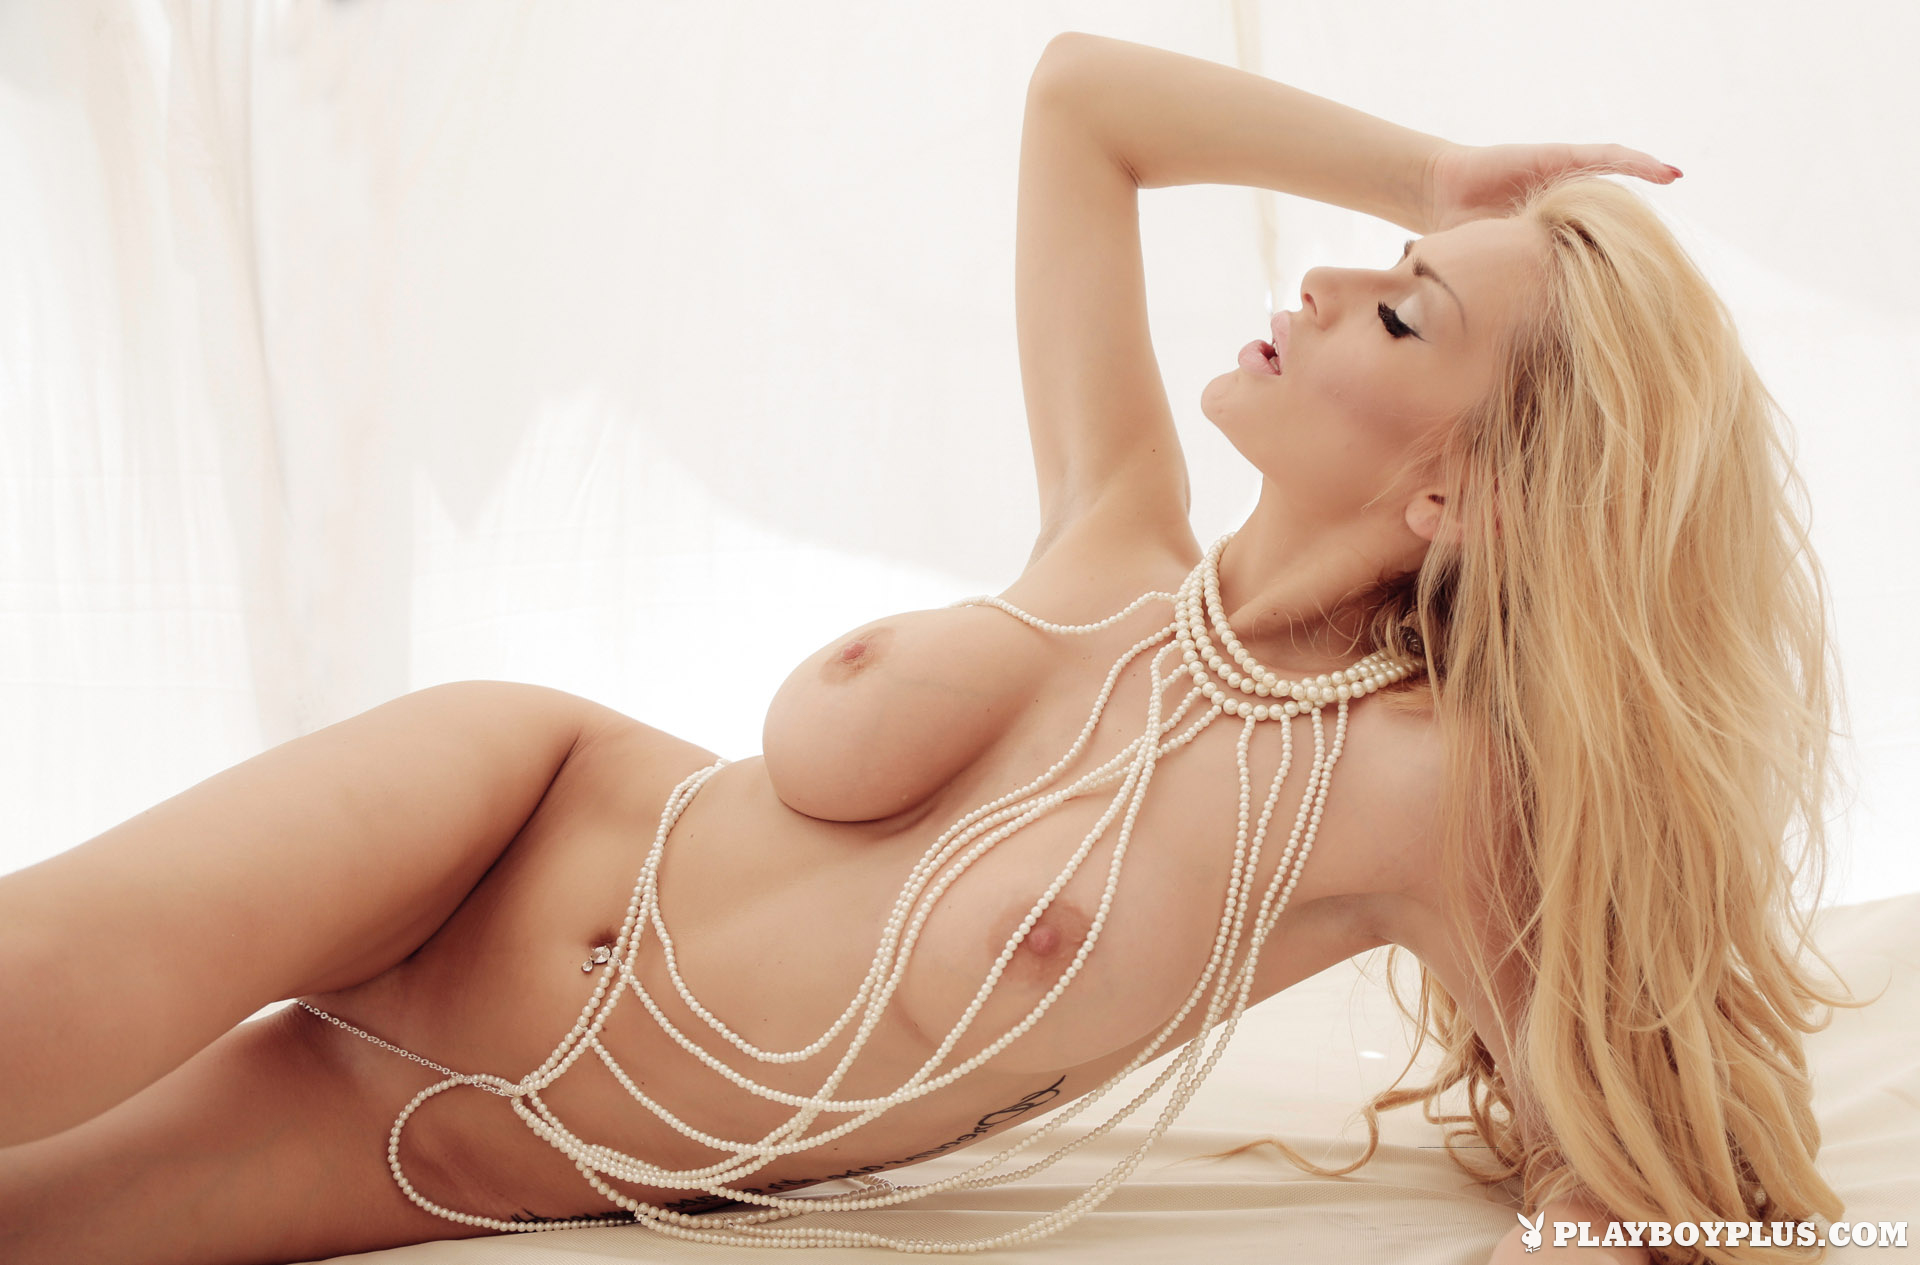 bozana-vujinovic-nude-boobs-blonde-croatia-playboy-12